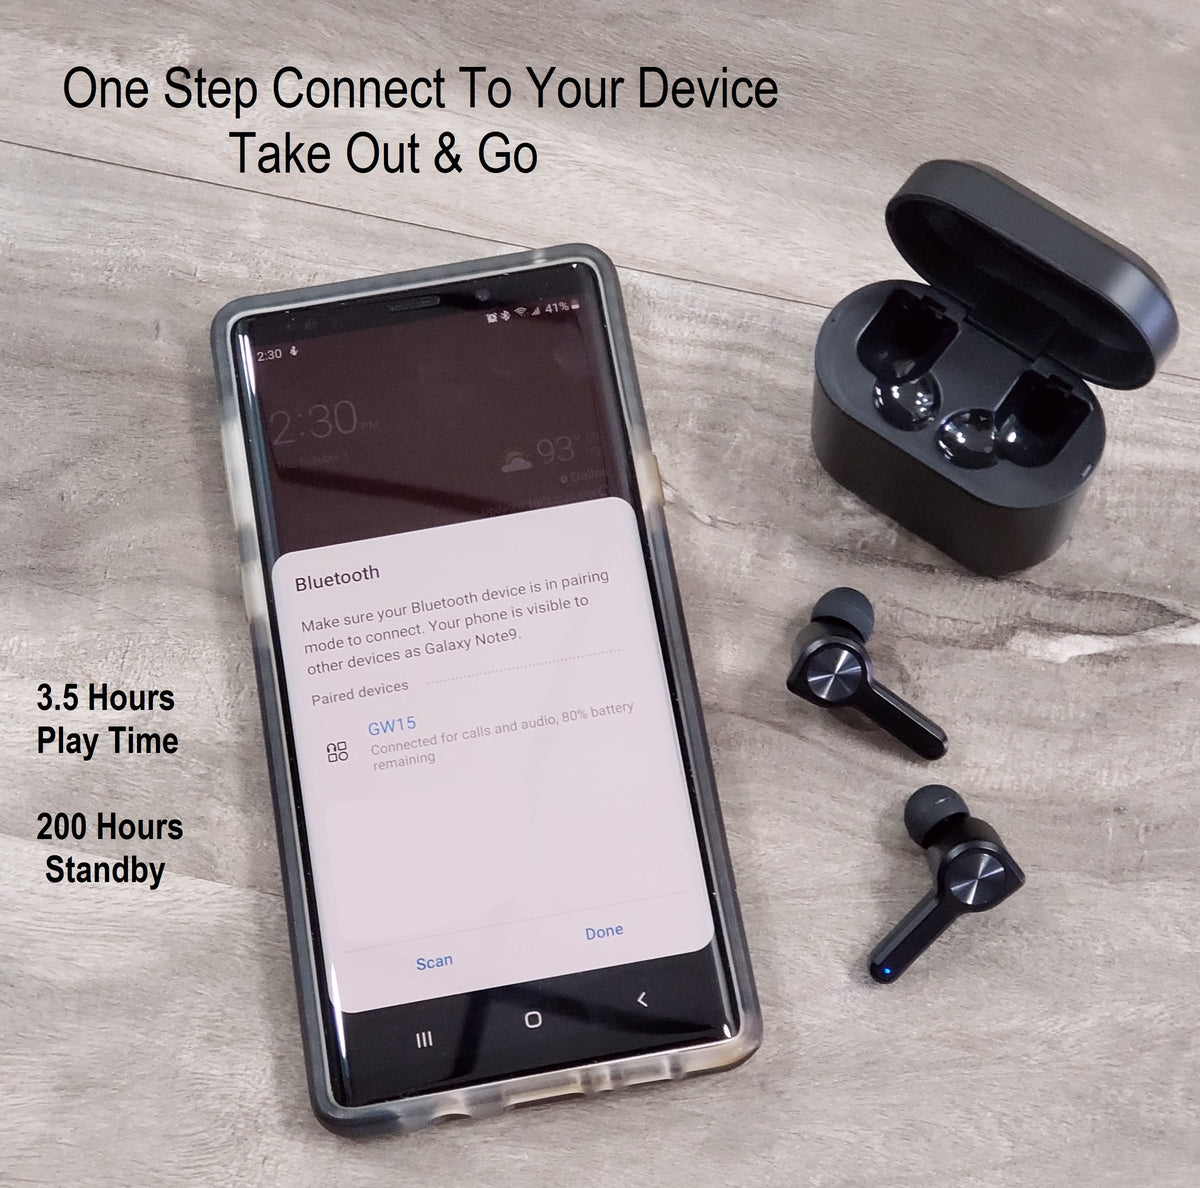 TWS Mini in Ear Wireless Sport Waterproof Handsfree Earbuds Bluetooth 5.0, One Step Paring Noise Cancelling Stereo Sound & Mic Works With iPhone or Android - Jazame, Inc.